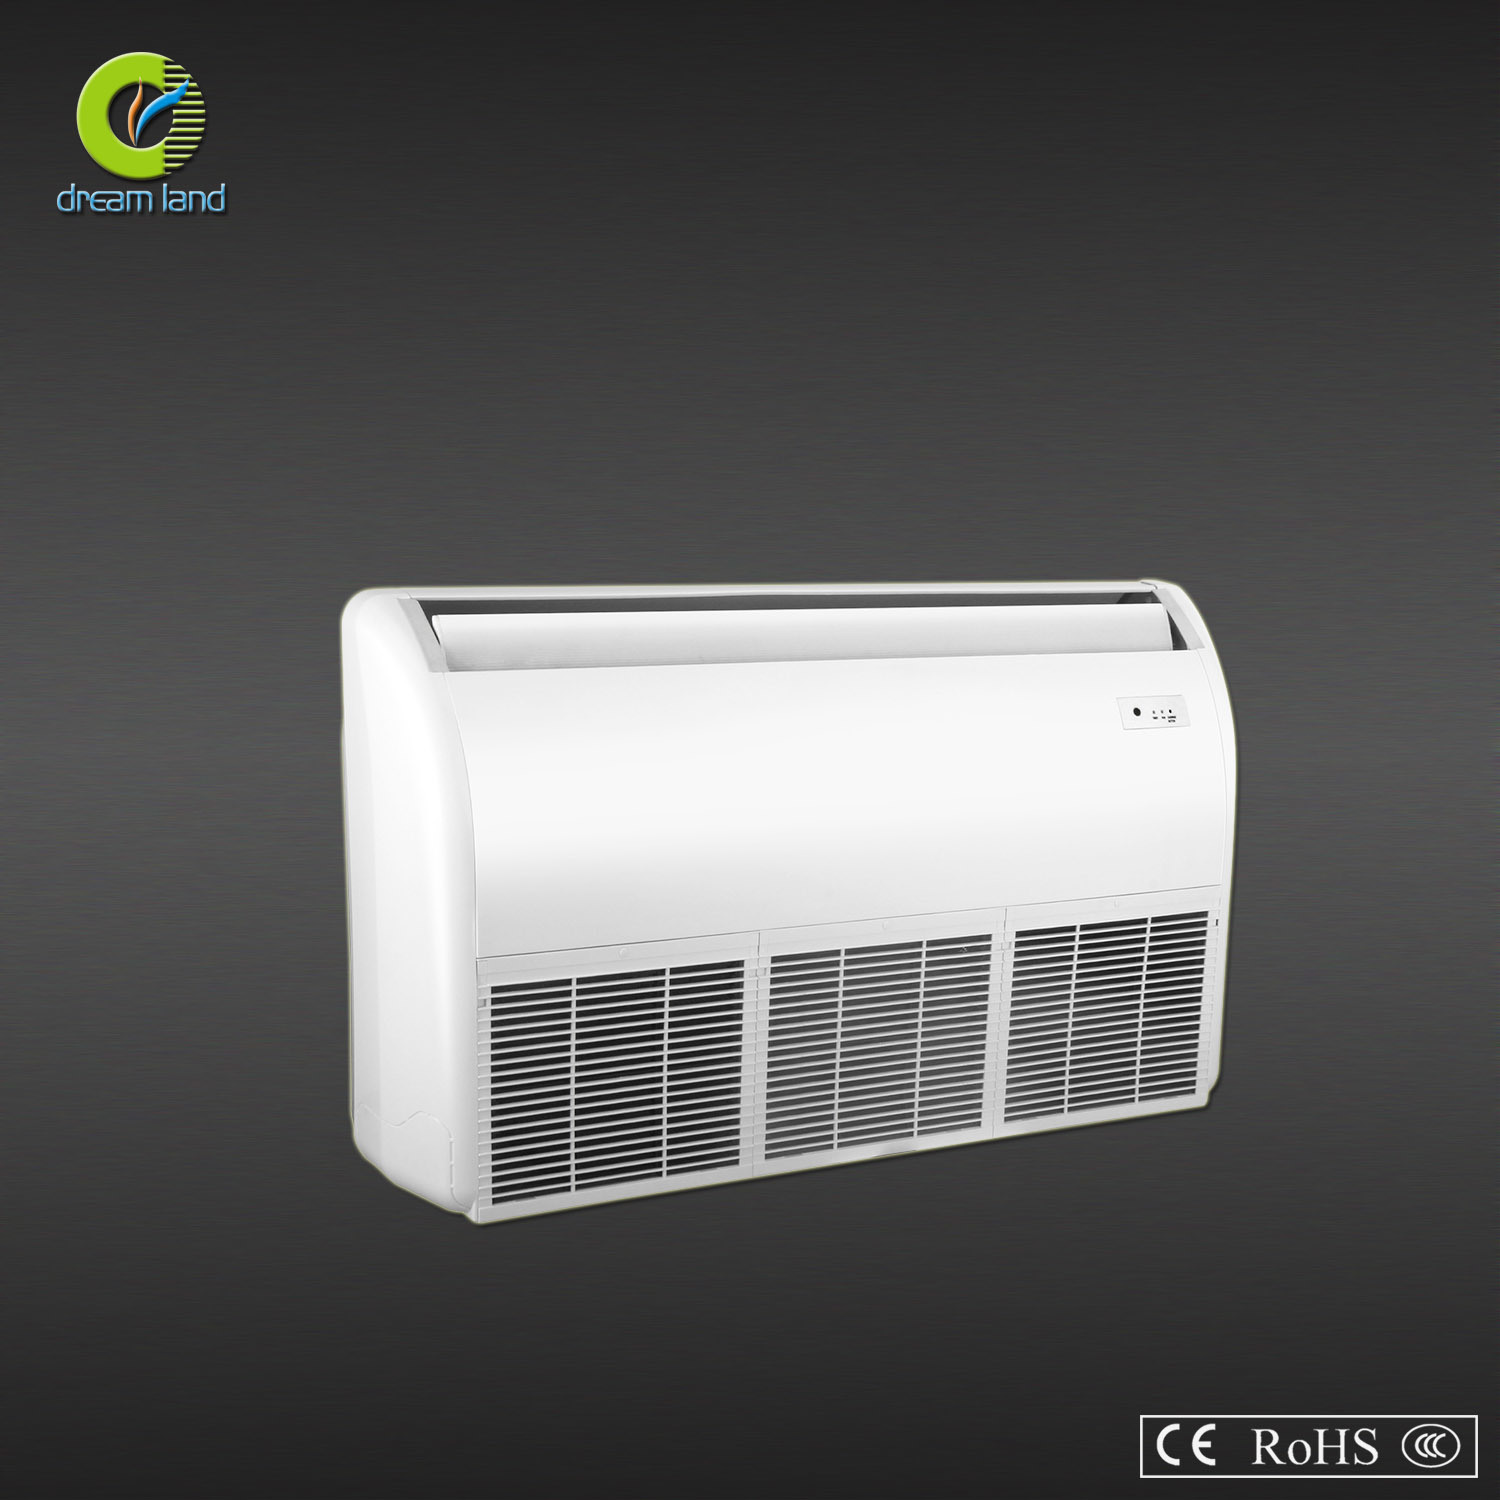 suppliers conditioner exporters product cassette ceiling mounted air manufacturers